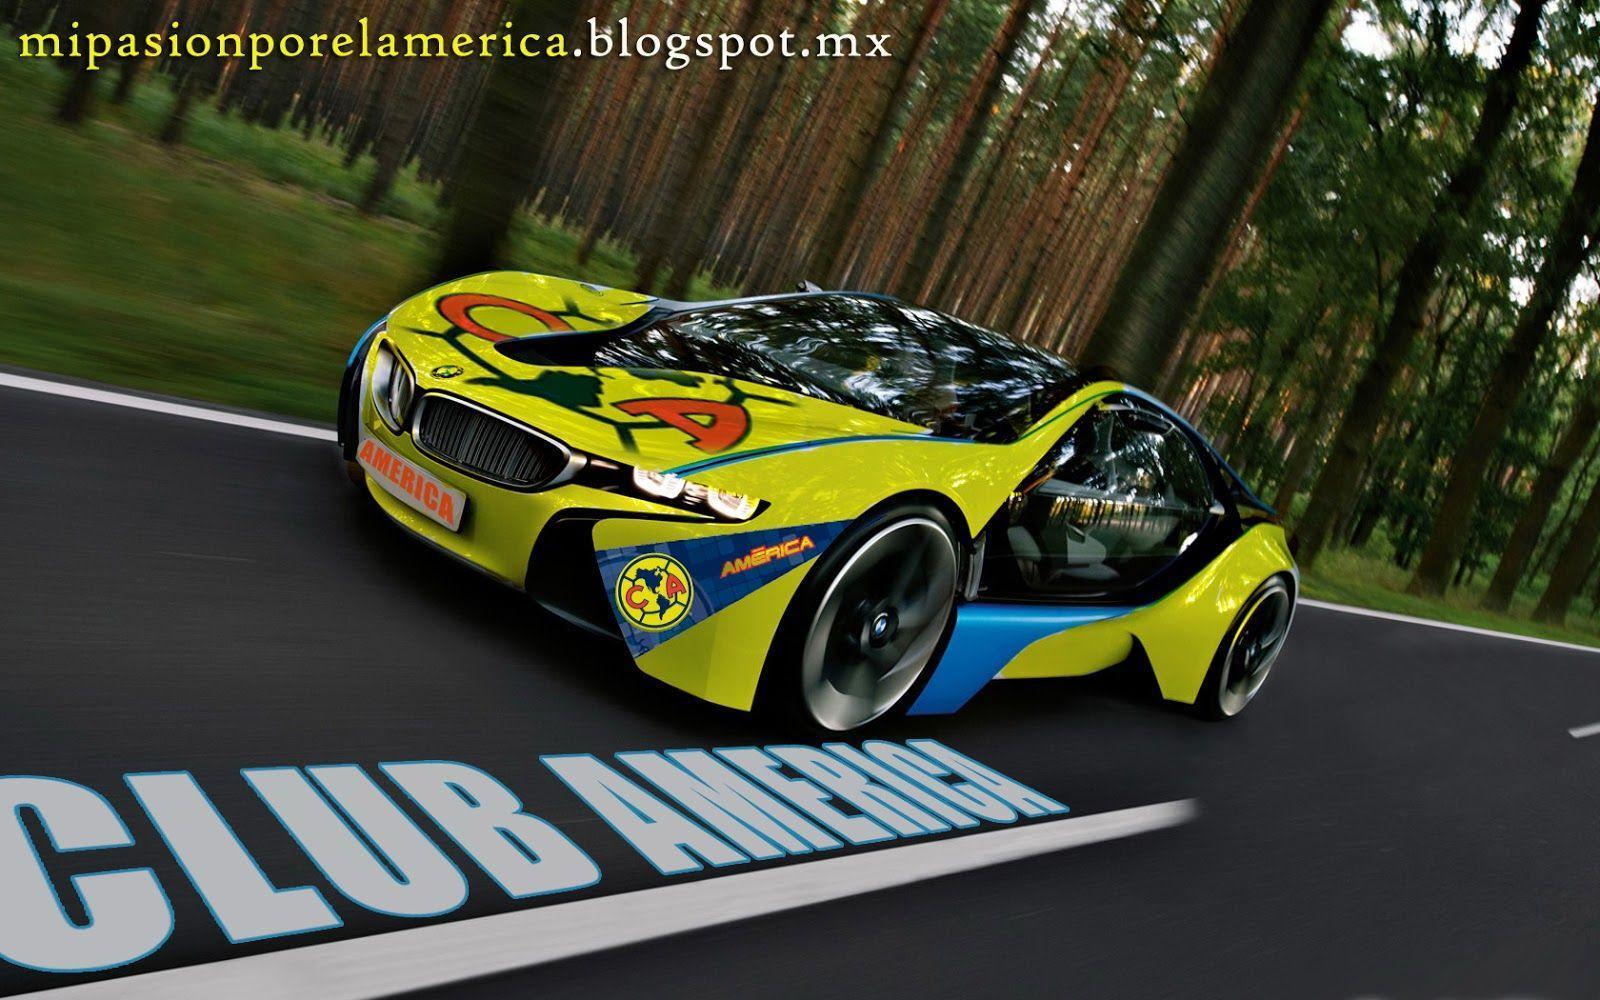 Wallpapers, Club america and BMW